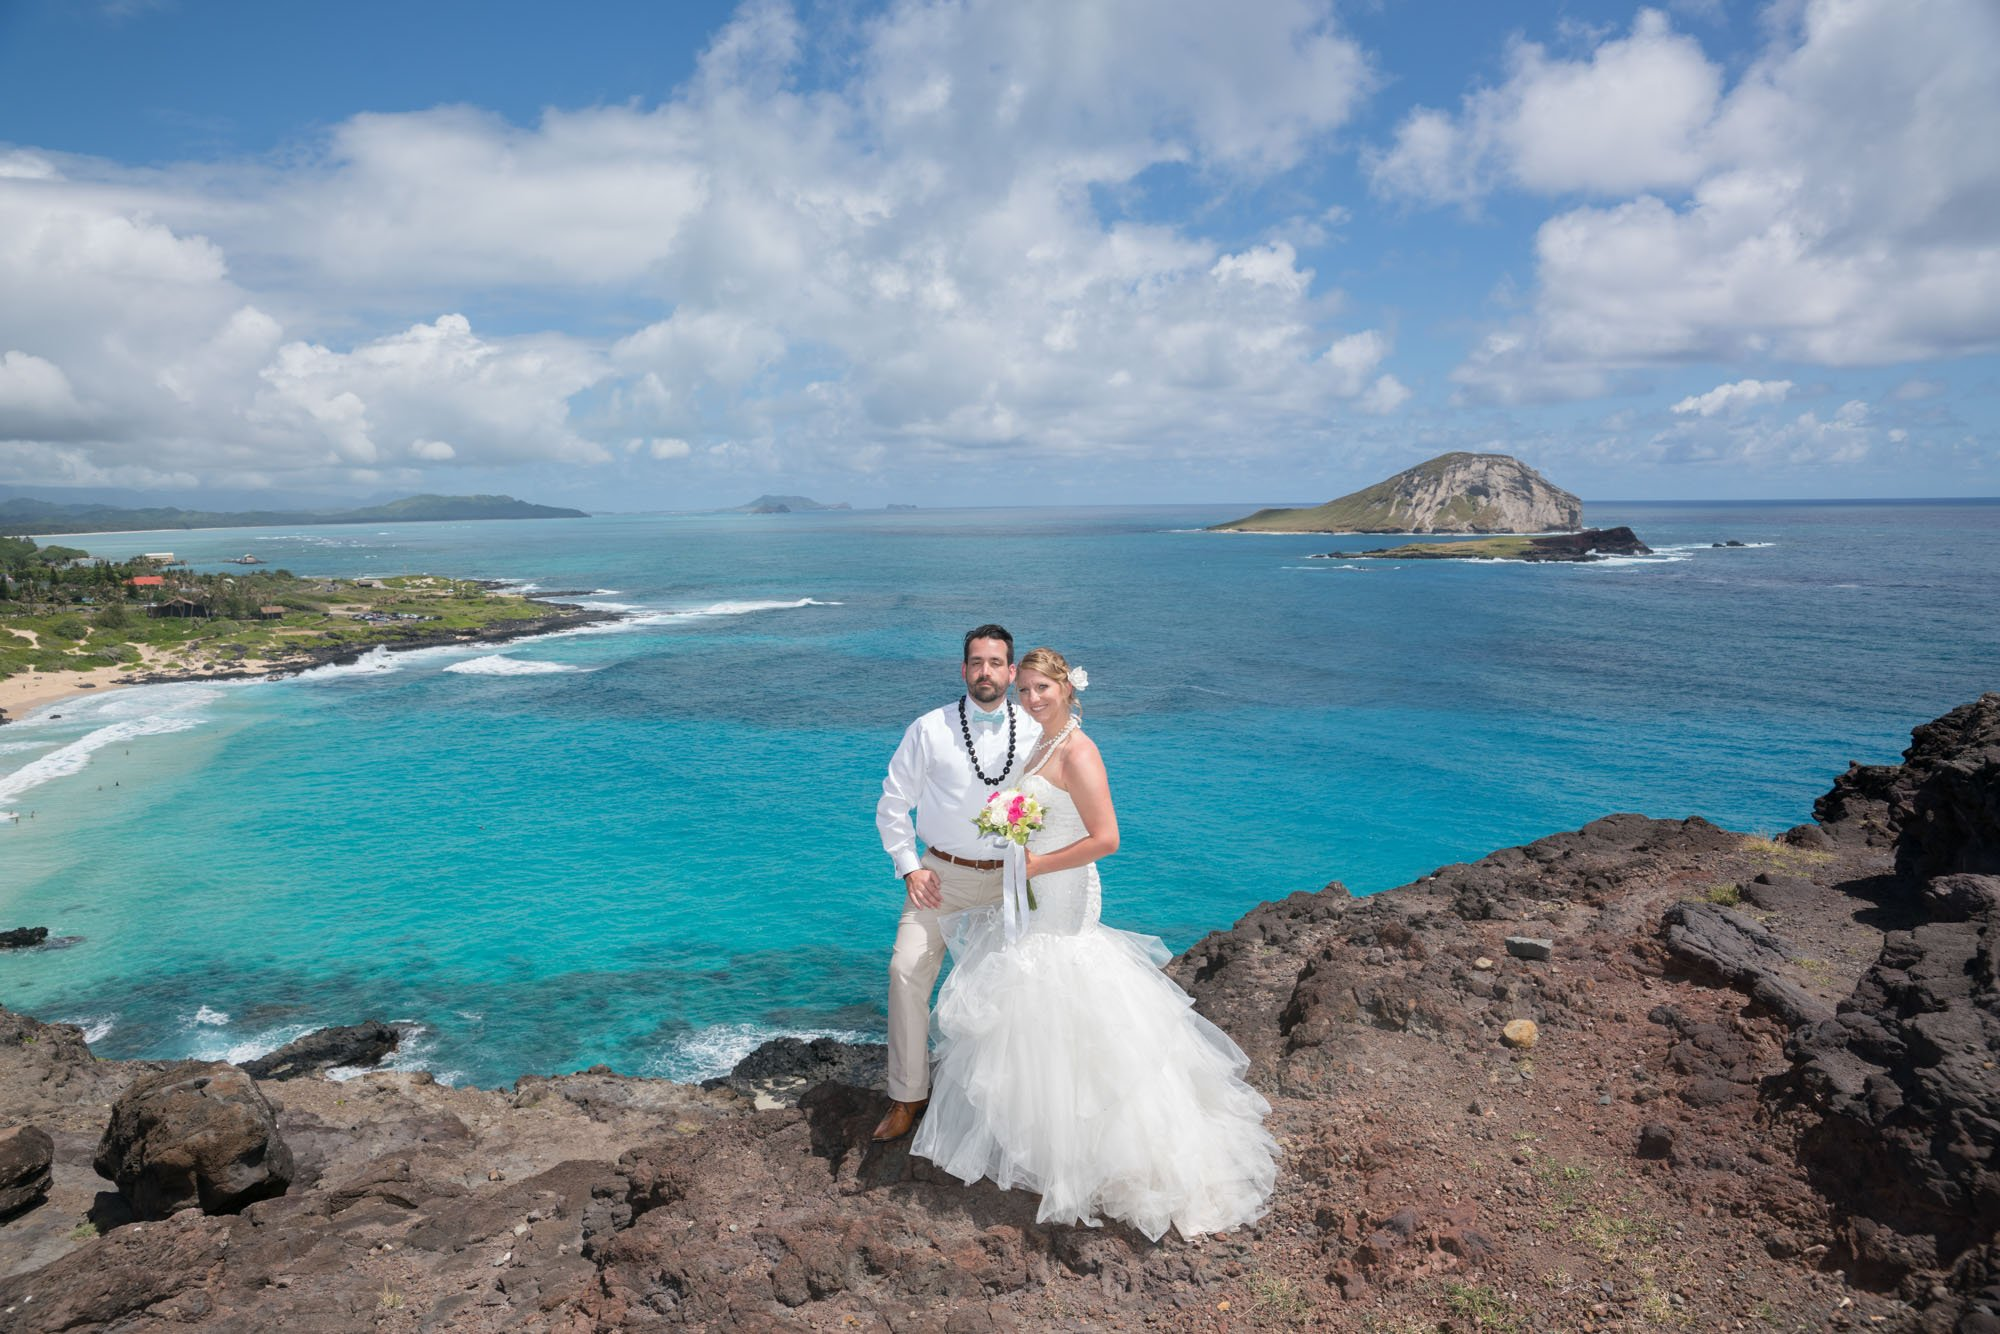 10hawaii waimanalo morning wedding makapuu lookout - oahu beach weddings